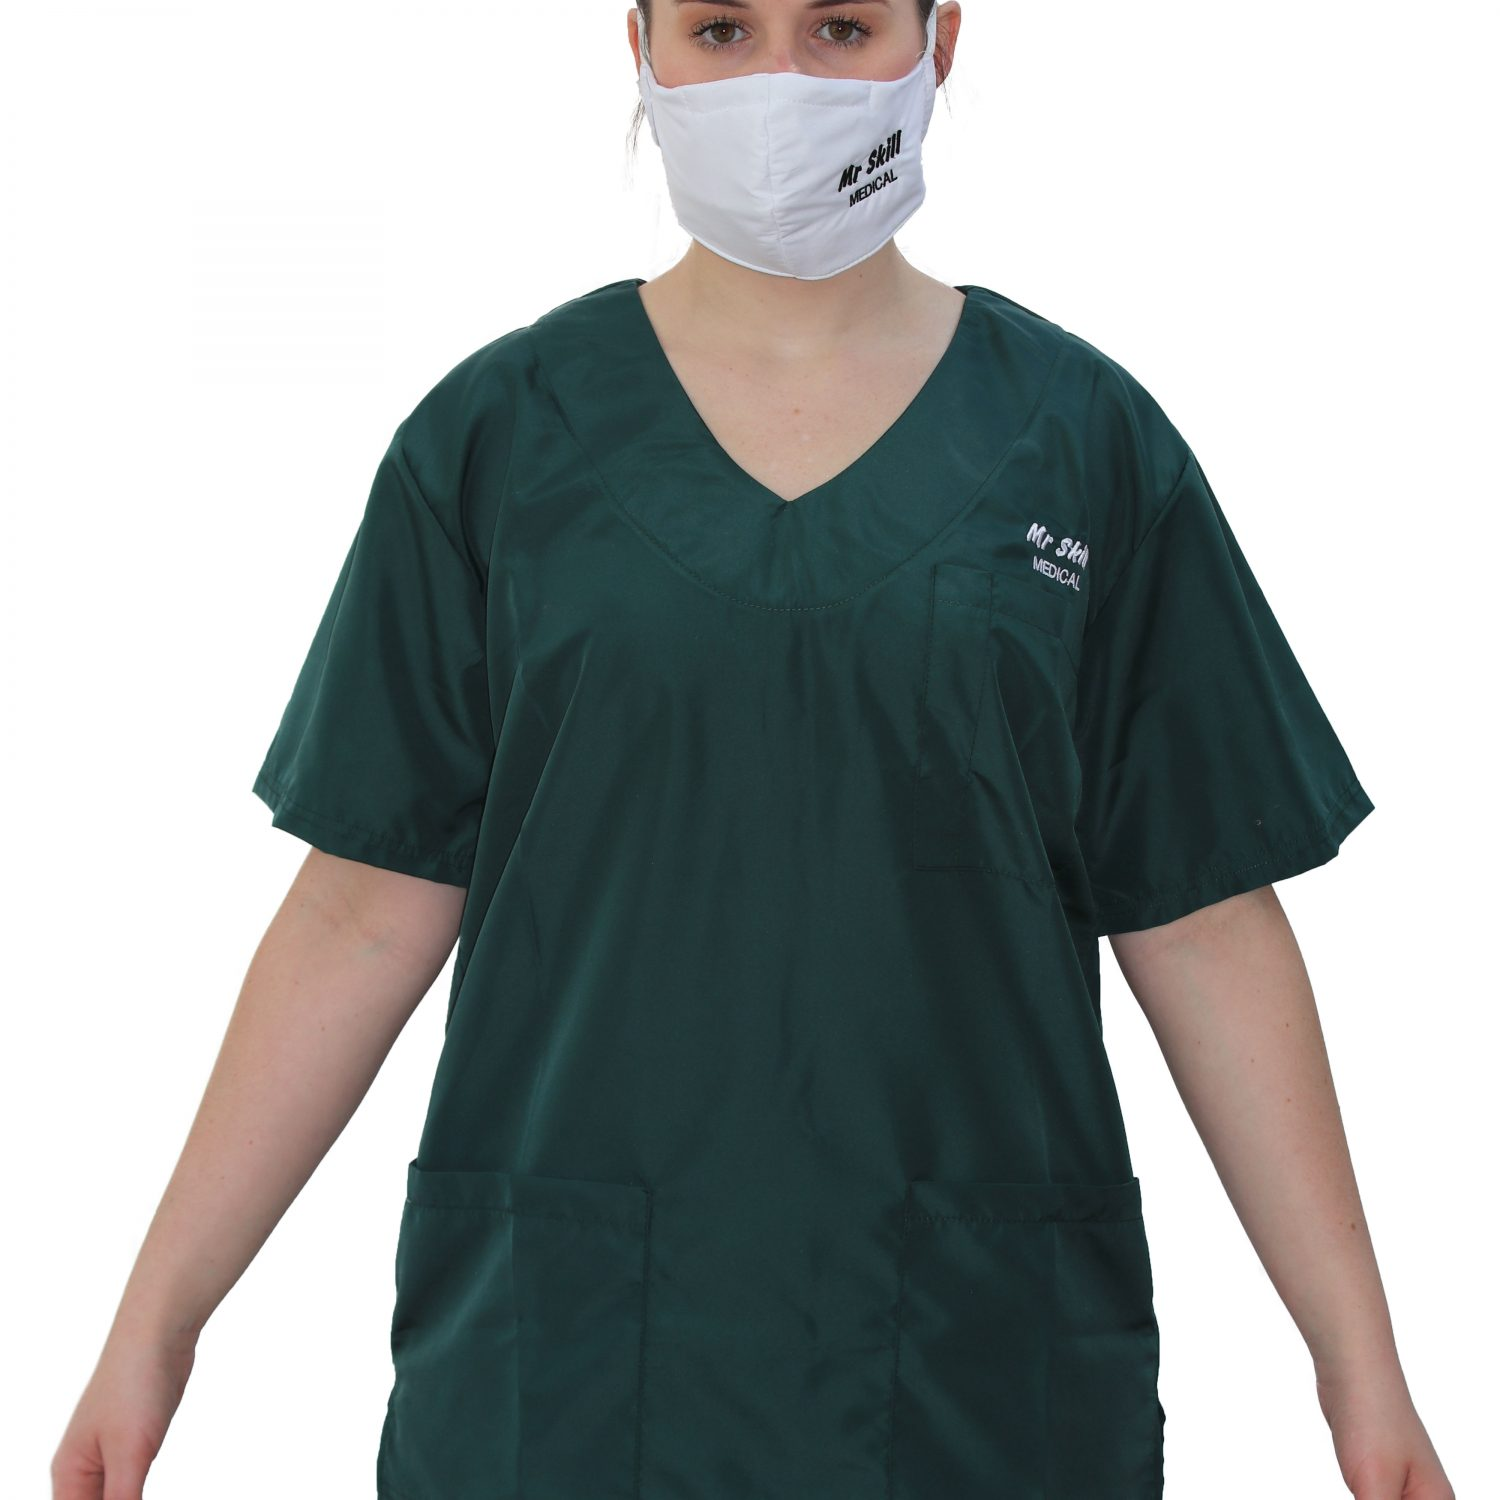 Medical Scrub Tops